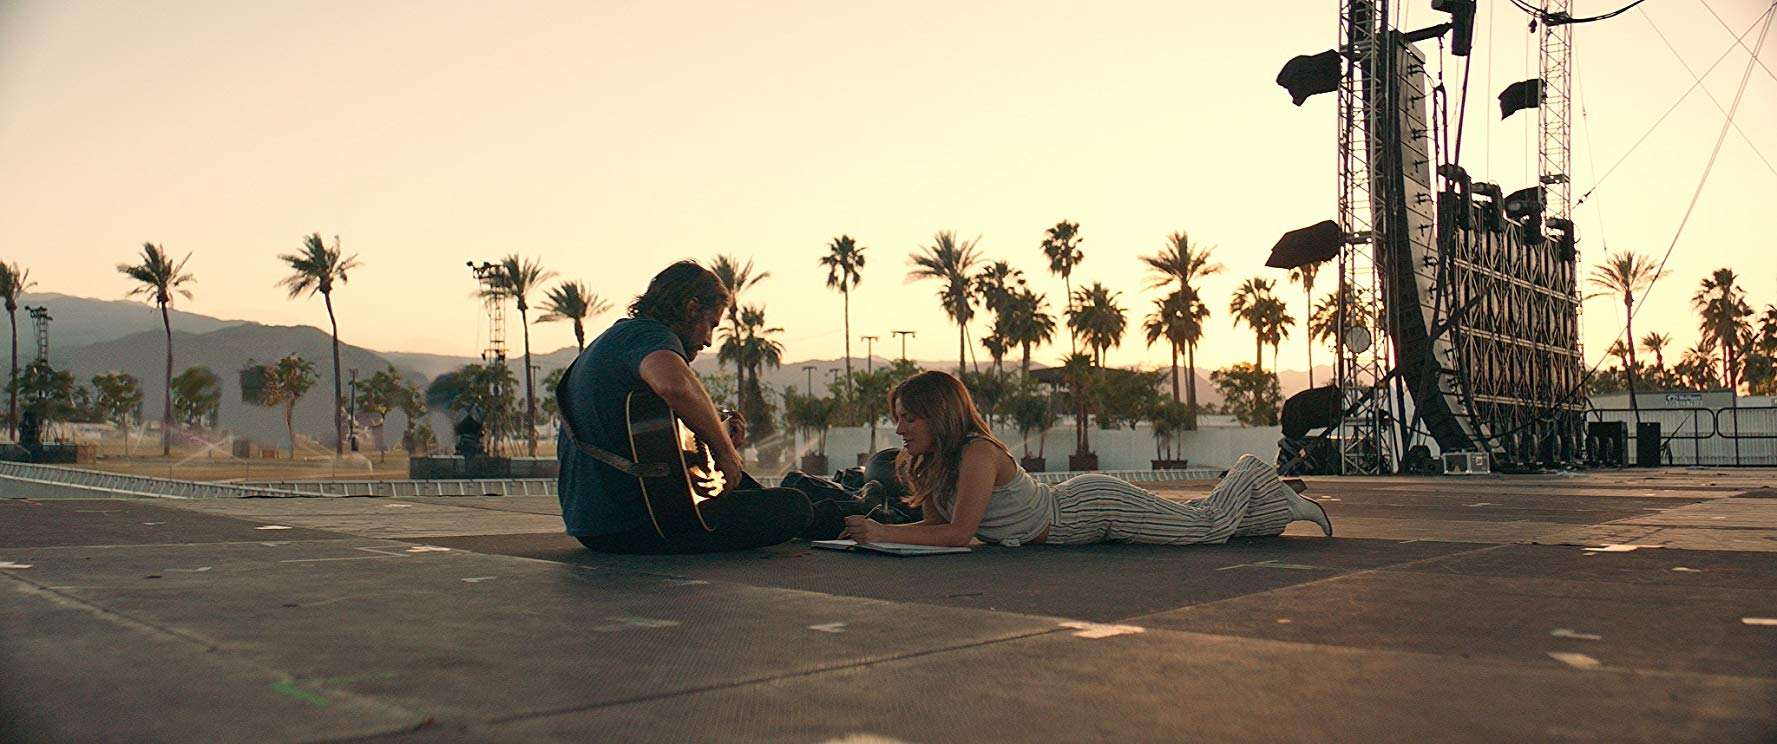 In a still from a scene cut from the original theatrical version of A Star Is Born, Bradley Cooper and Lady Gaga sit on an empty stage together writing music.